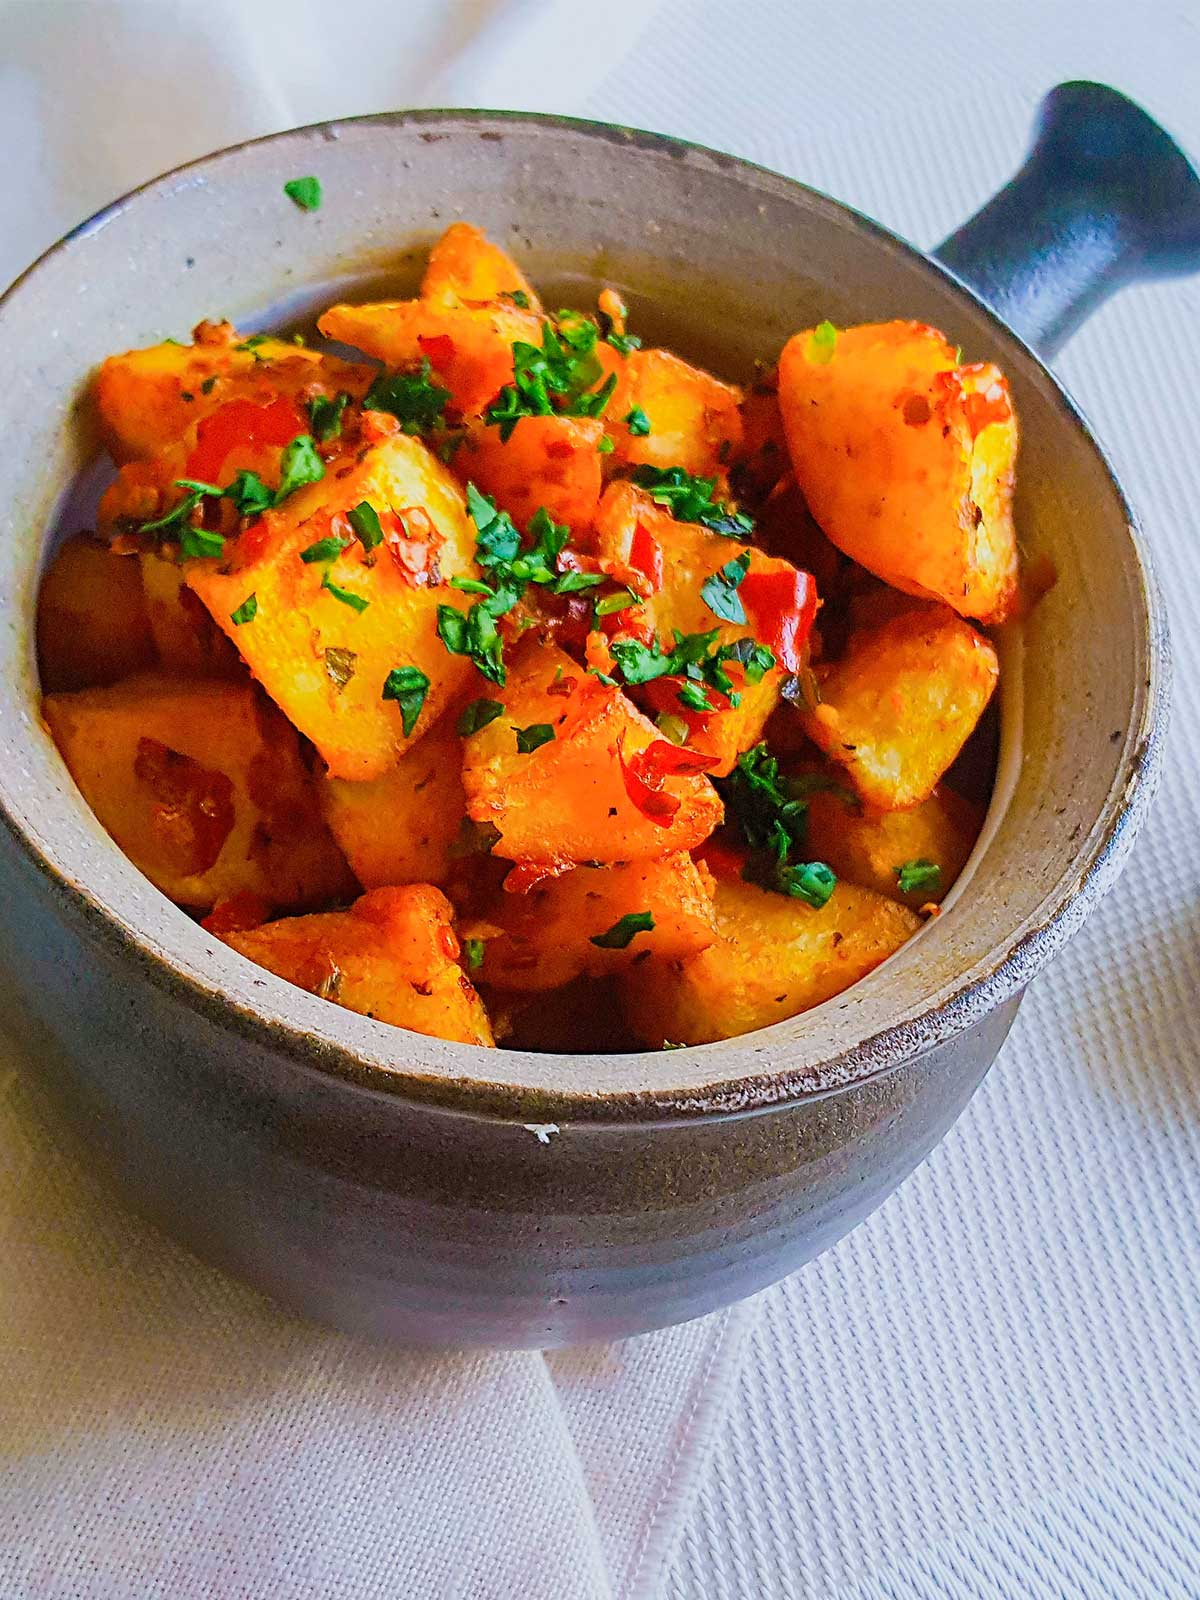 Batata Harrah served in a Bowl topped with cilantro and chilies